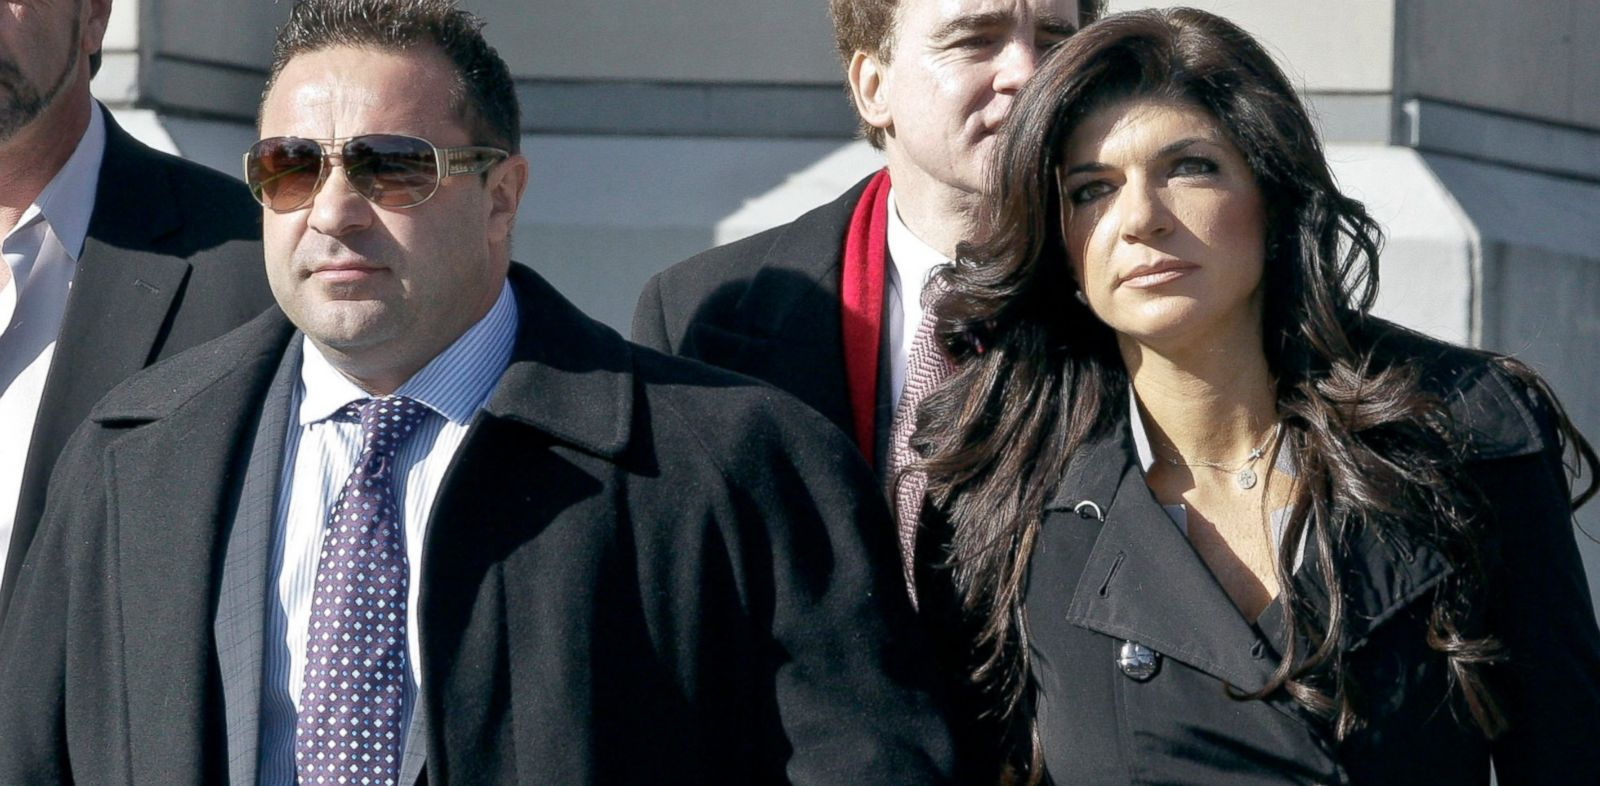 PHOTO: Teresa Giudice and her husband Giuseppe Joe Giudice leave Newark federal court, Nov. 20, 2013, in Newark, New Jersey.